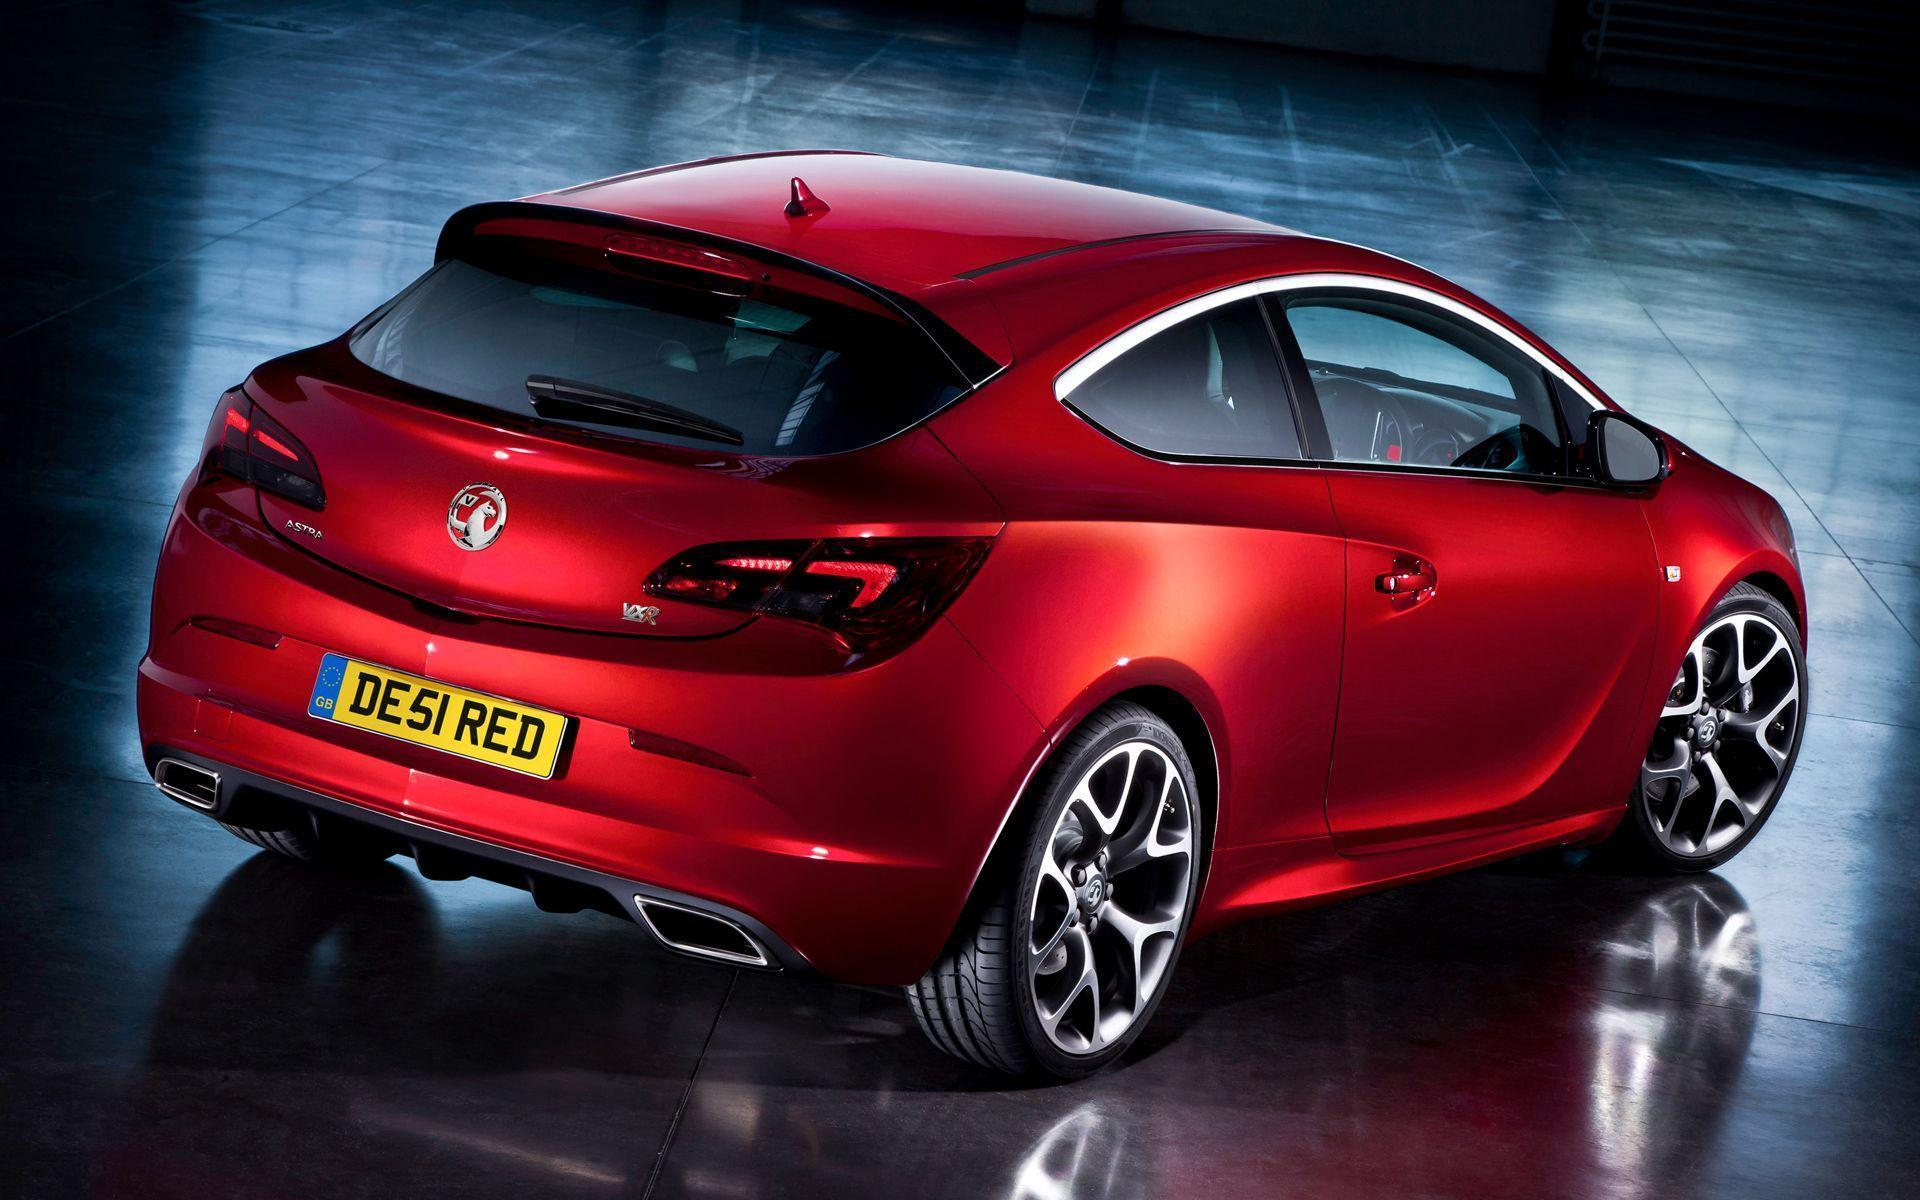 Vauxhall Car Wallpapers | Vauxhall Pictures | Vauxhall HD Desktop ...